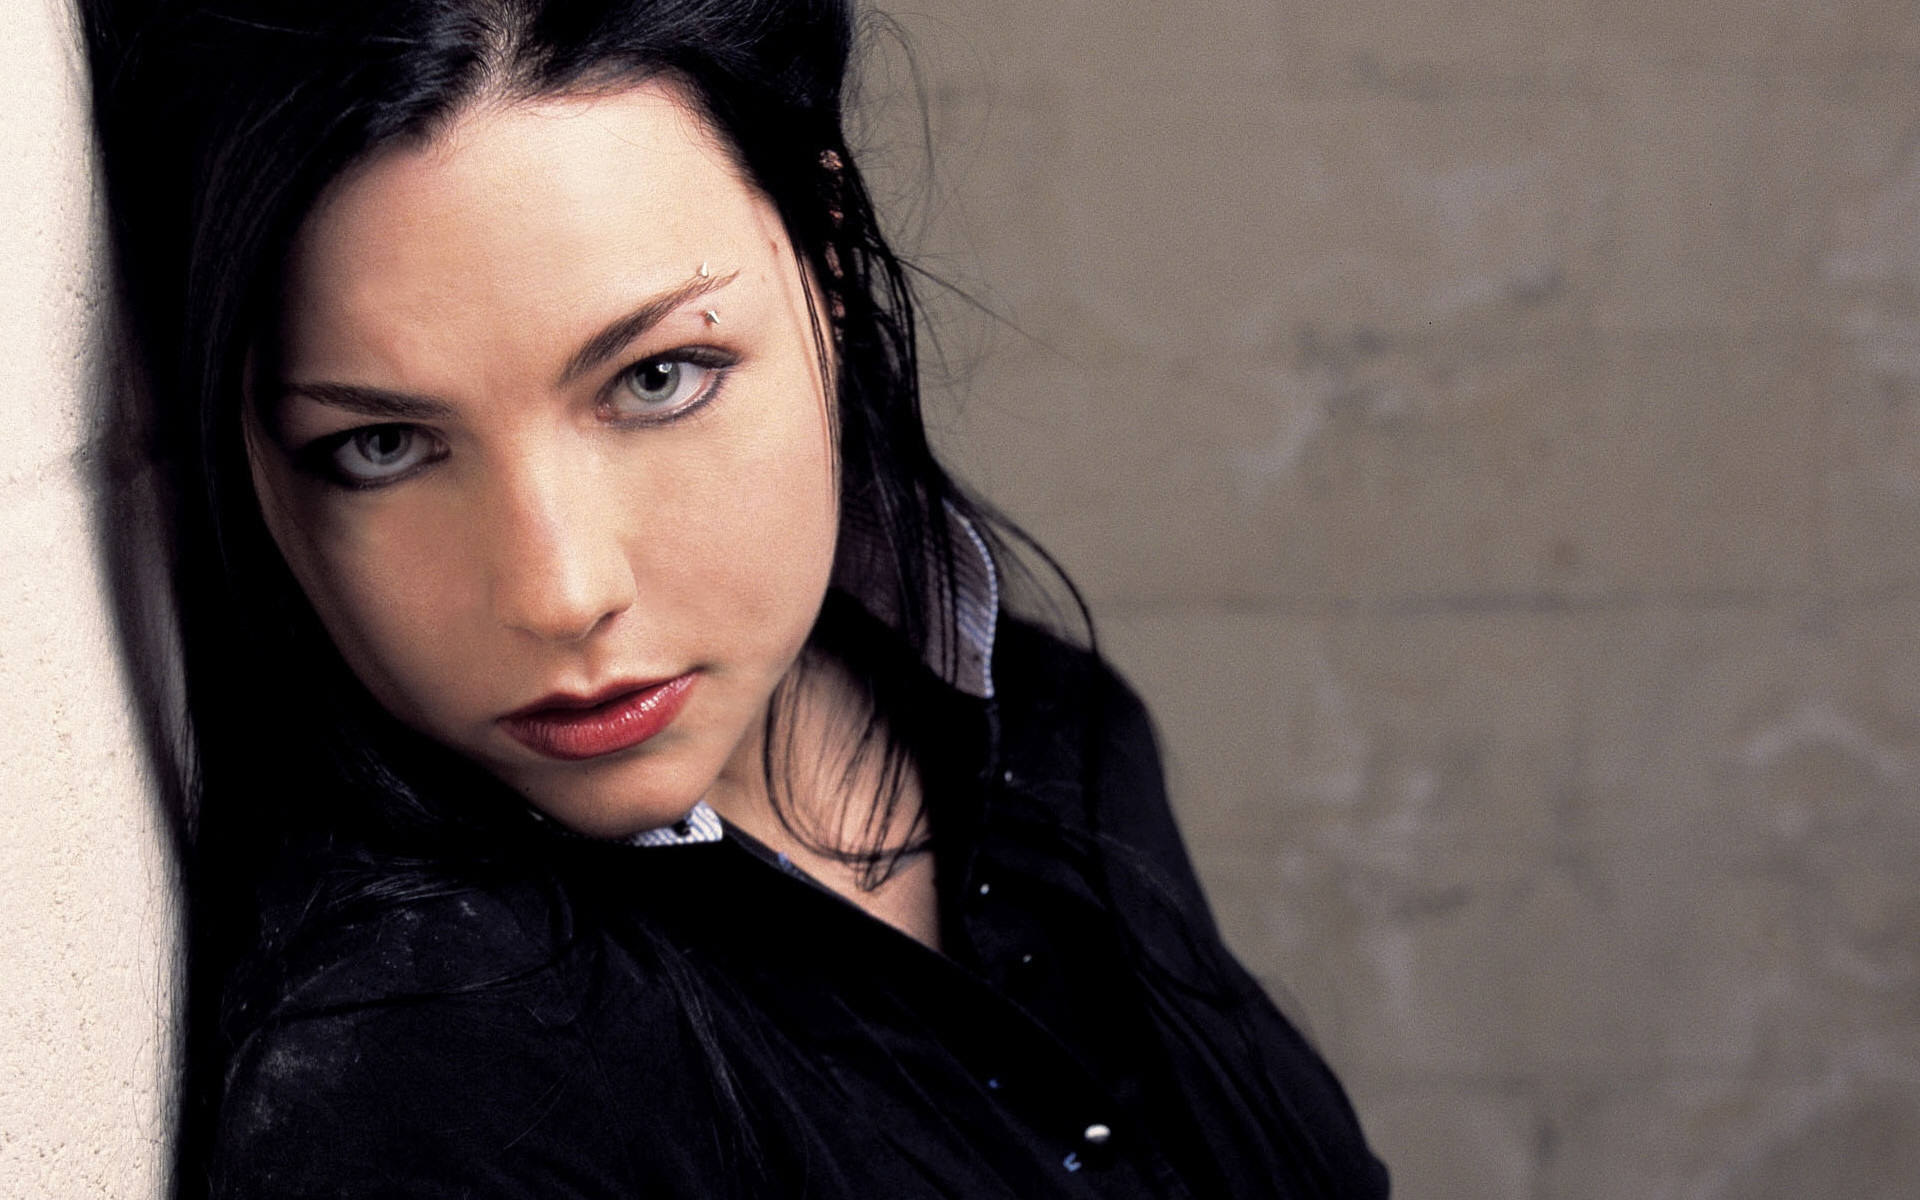 Free Amy Lee Wallpaper 20494 1920x1200 px